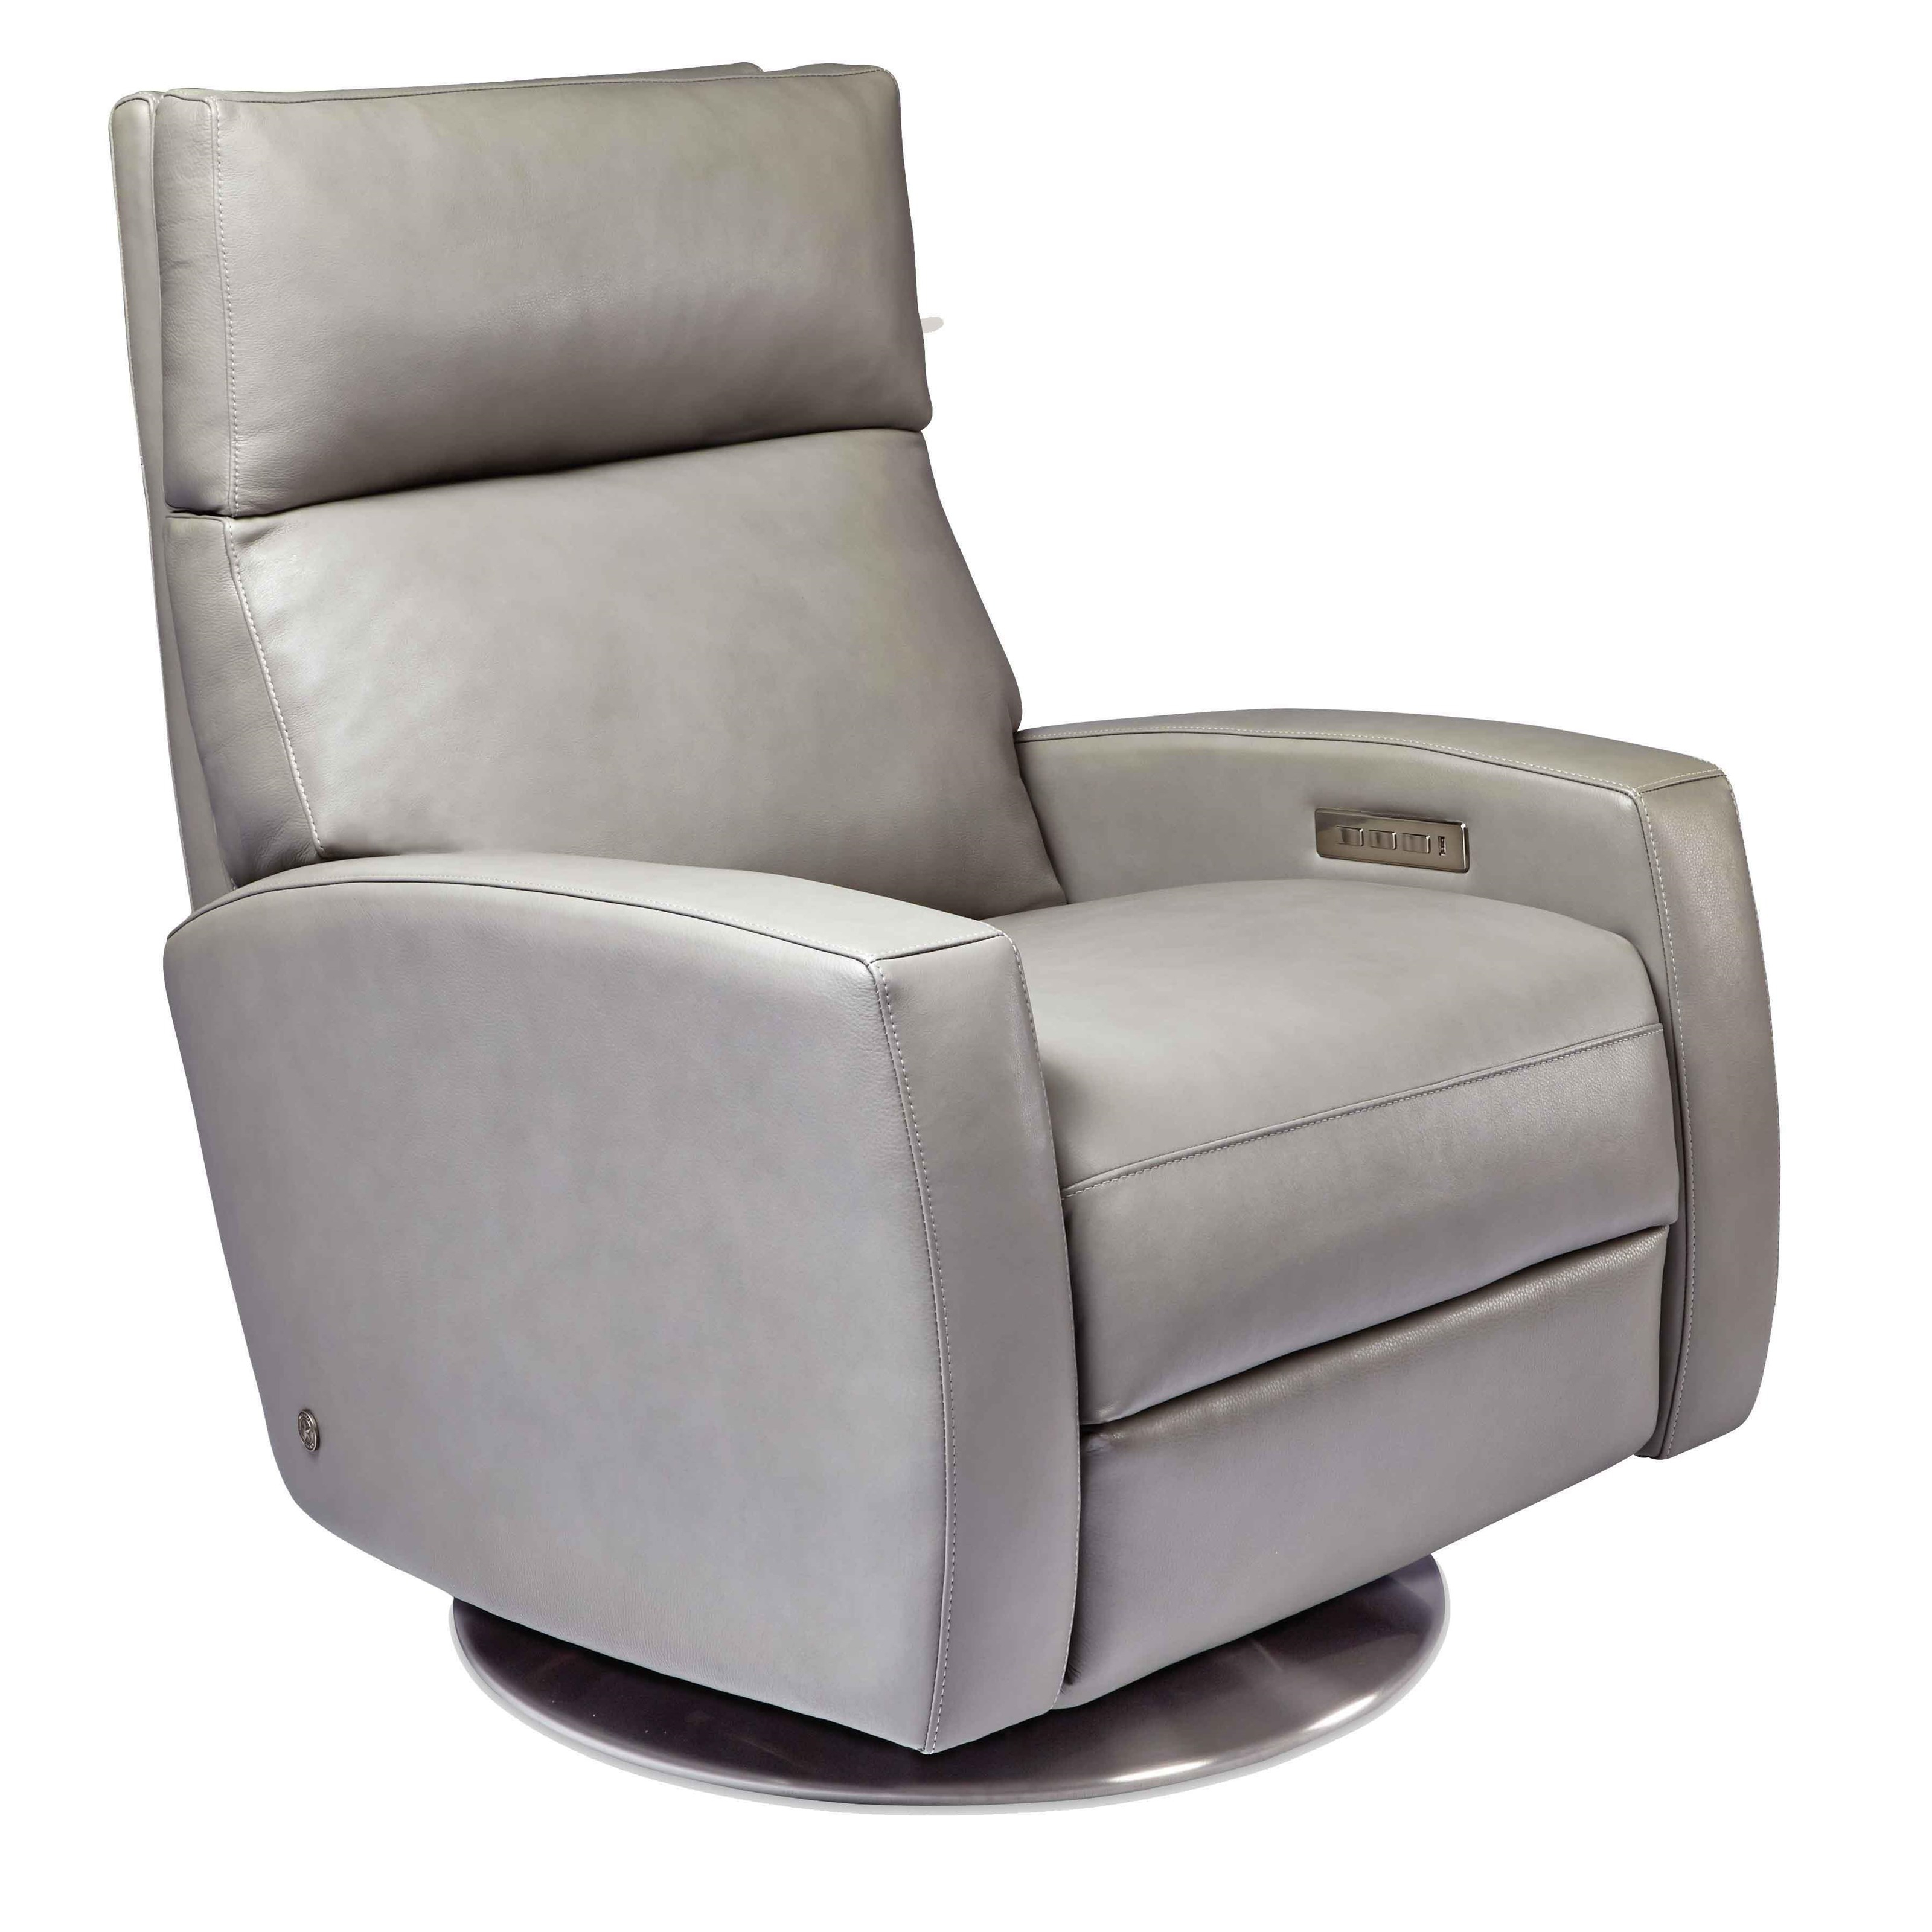 Manor Grey Swivel Chairs Within Favorite Chairs (View 8 of 20)